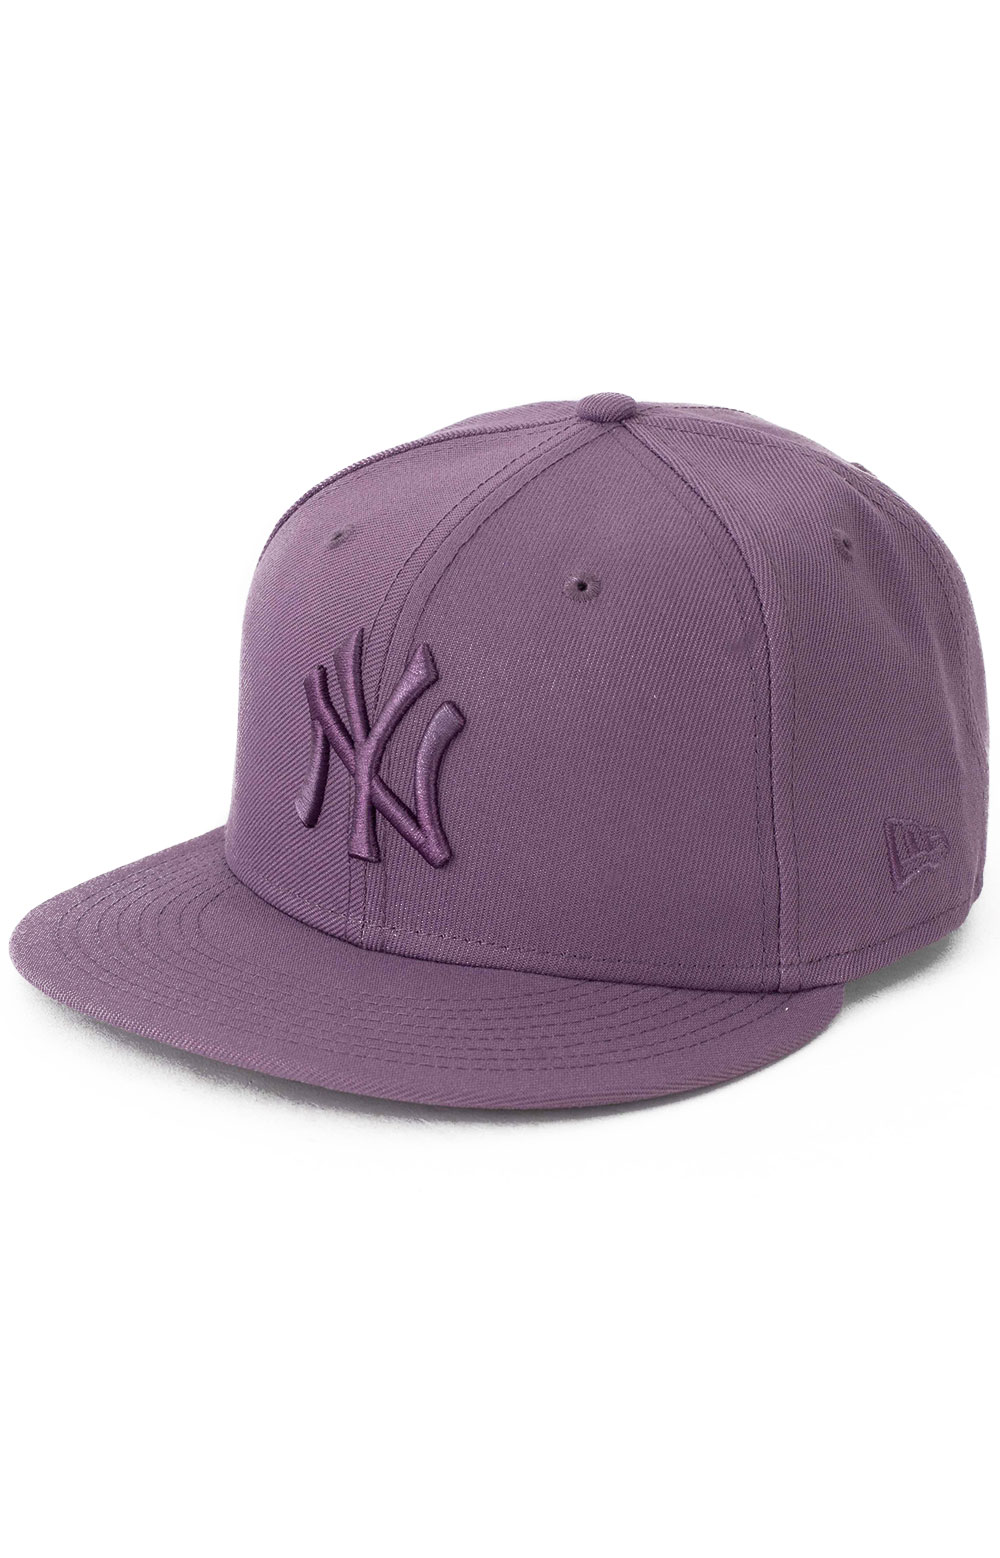 9Fifty Color Pack Snap-Back Hat - NY Yankees Purple